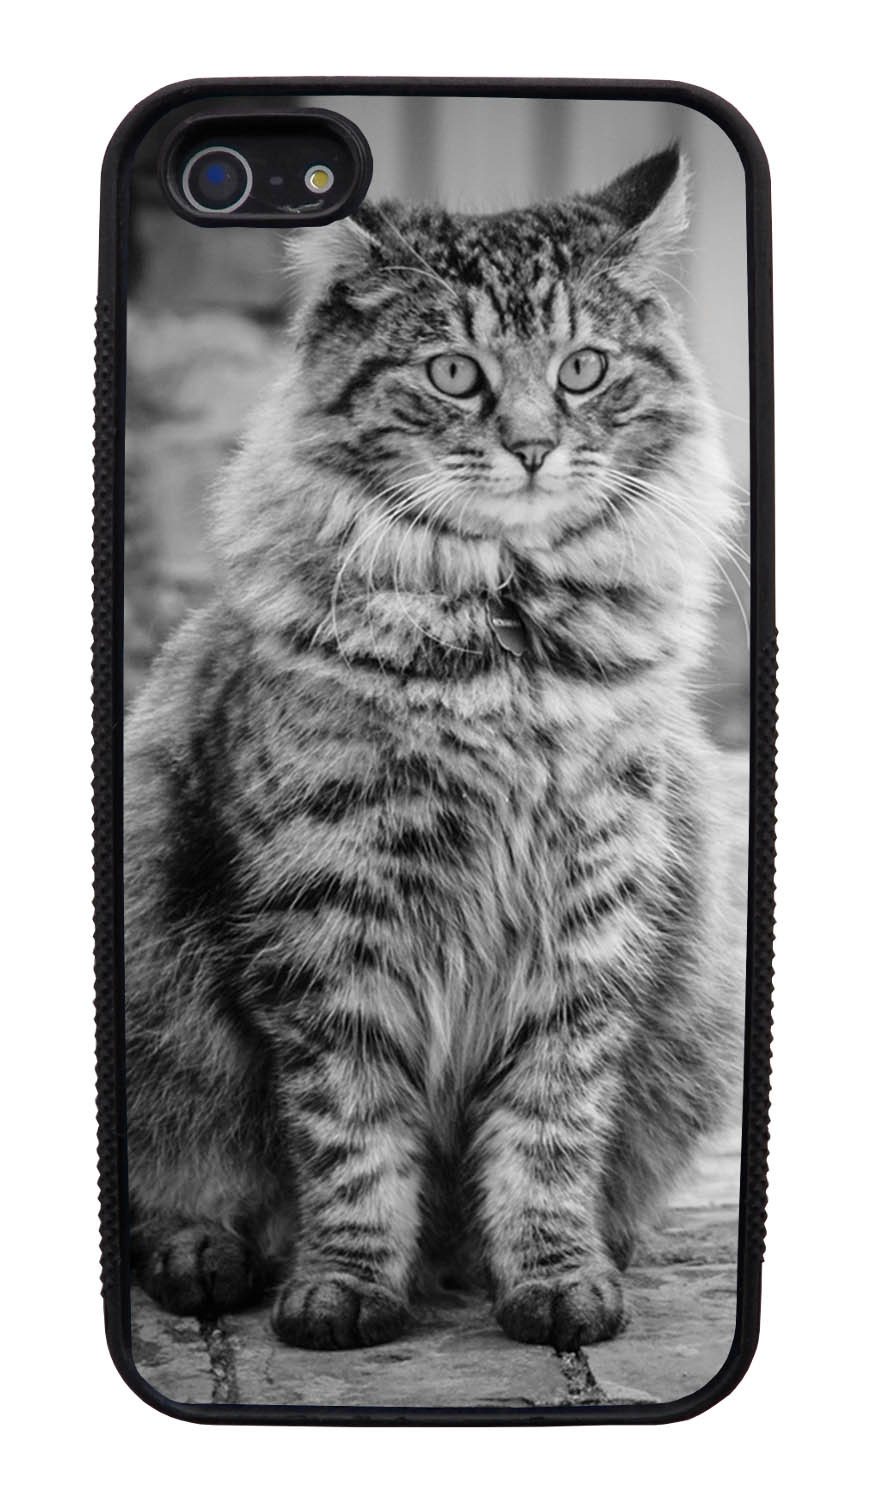 Apple iPhone 5 / 5S Cat Case - Fur-ball Cat Photo - Cute Pictures - Black Slim Rubber Case